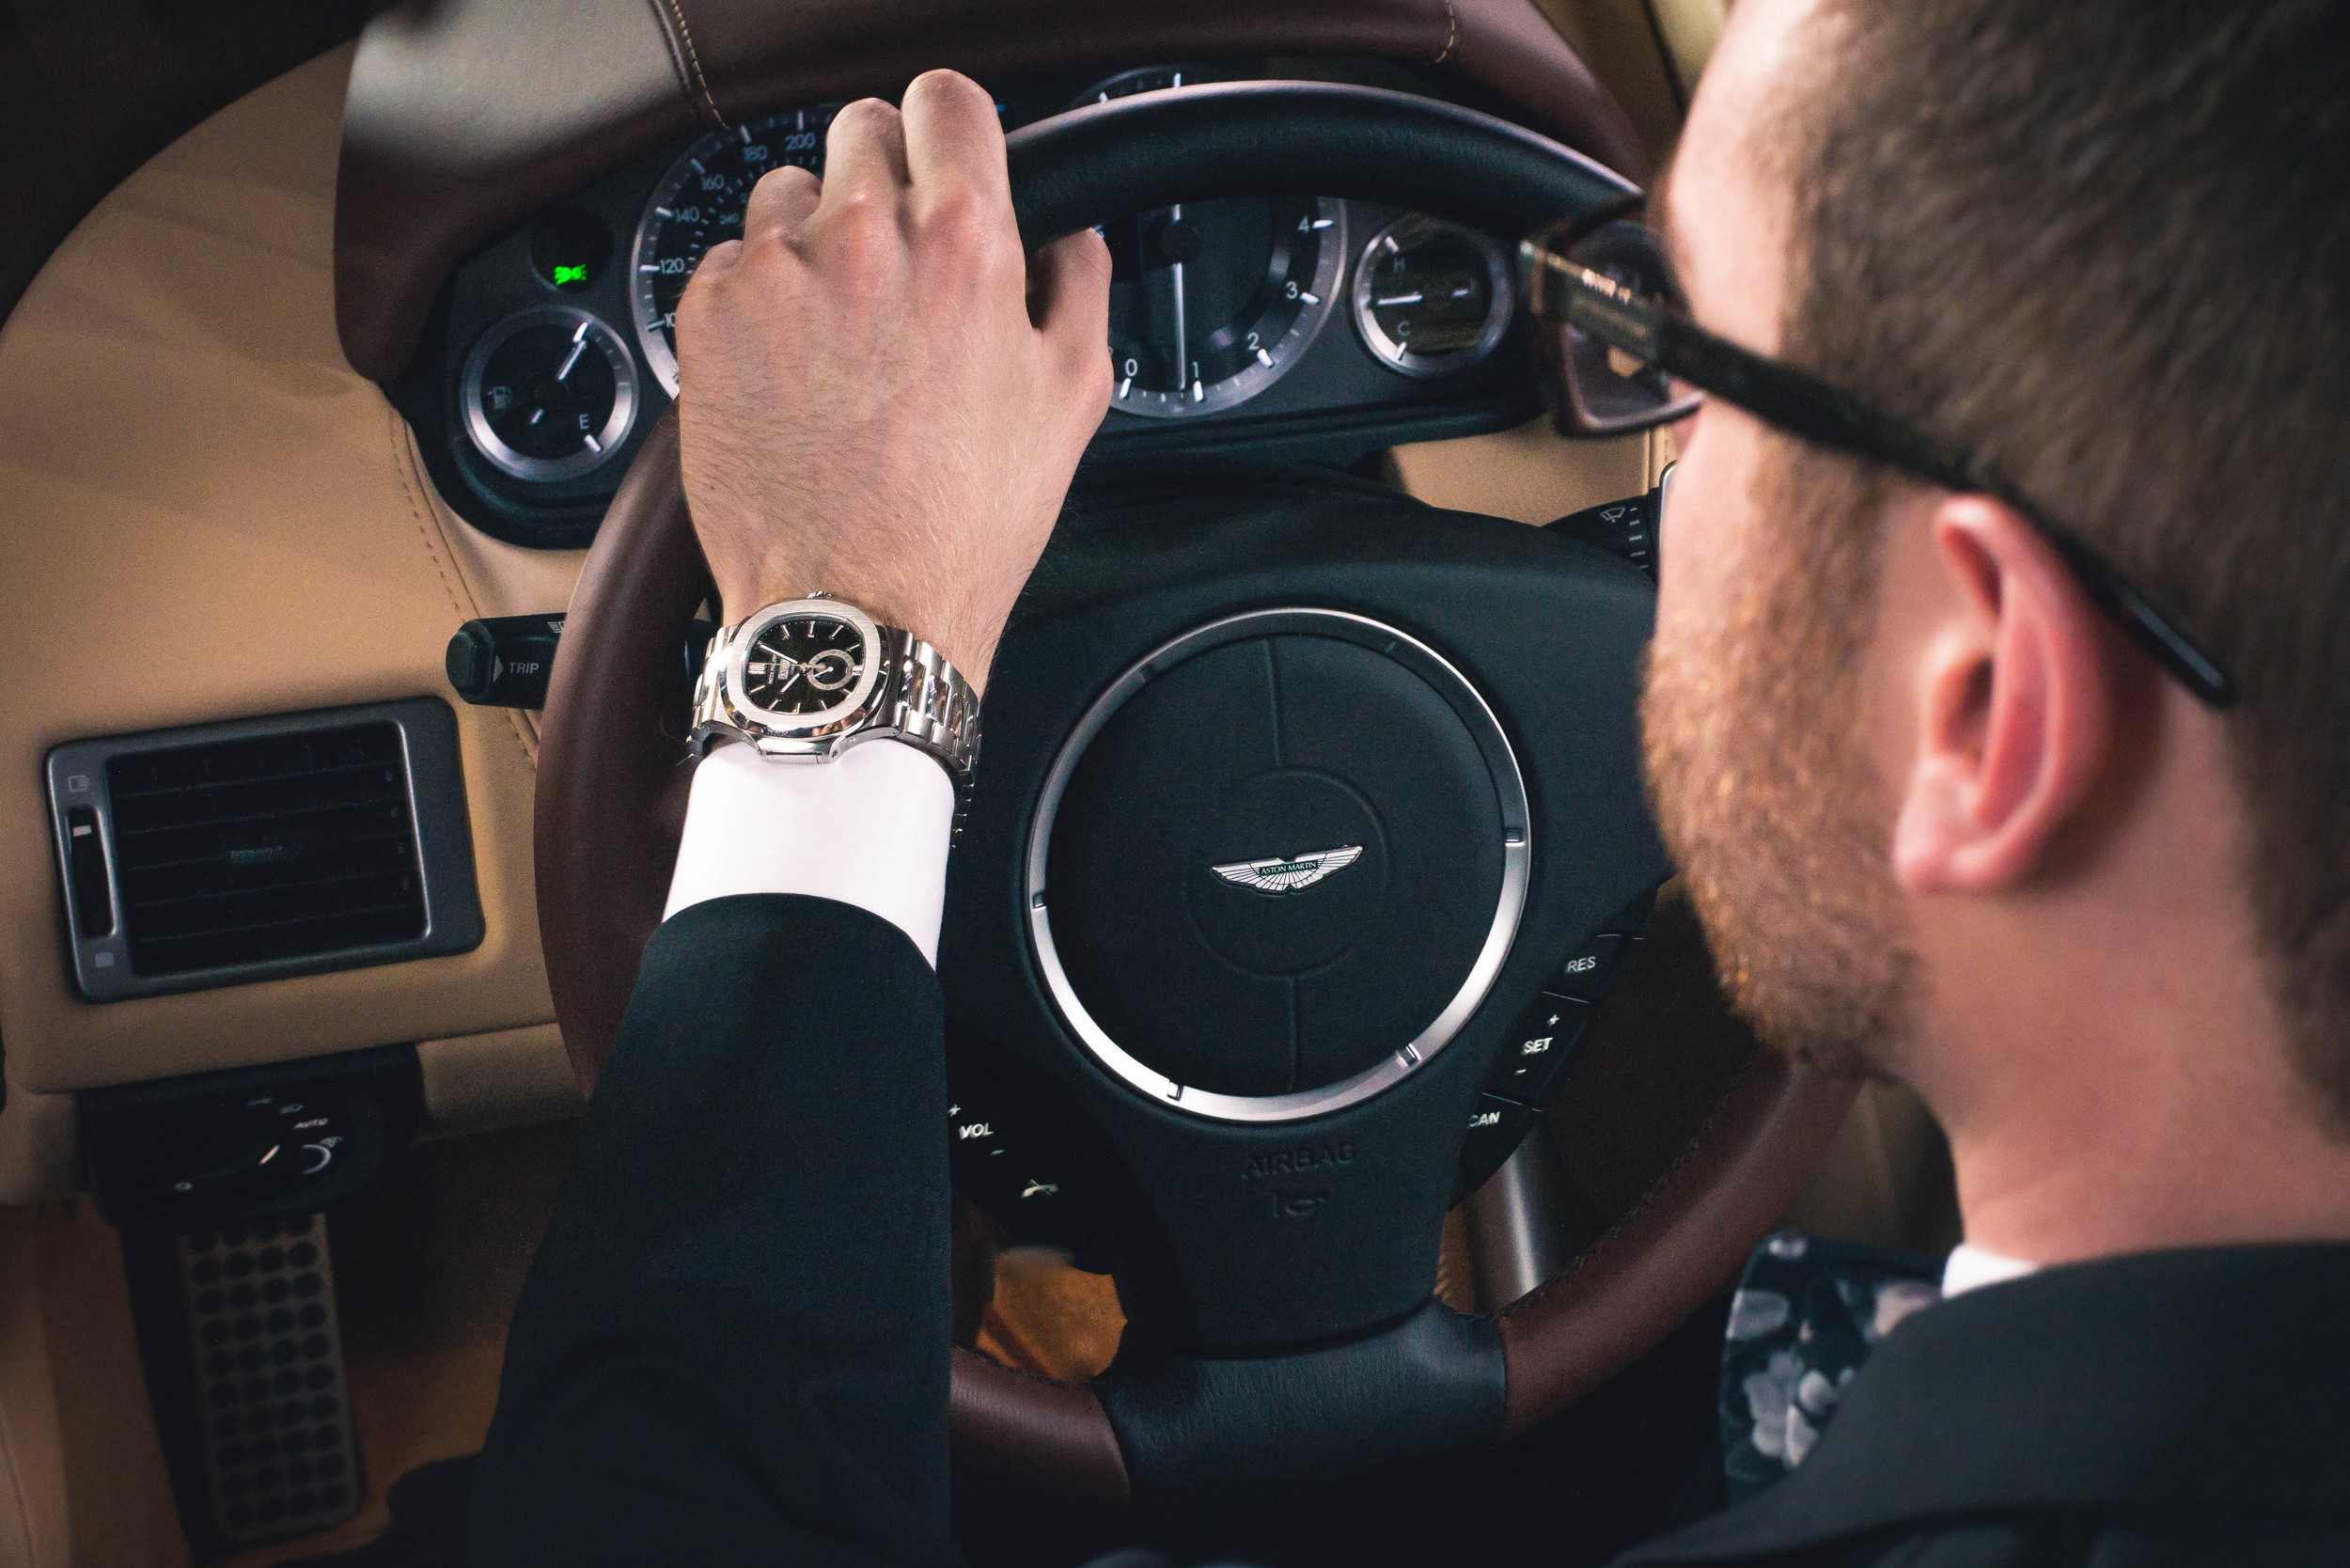 Watch: Patek Philippe Nautilus, Tuxedo: Armani Collezioni, Shirt: Ledbury, Tie: The Tie Bar, Shoes: Crosby Square, Glasses: Burberry, Car: 2014 Aston Martin DB9 Volante(courtesy Foreign Cars Italia), Photo: Alec Hutchins Photography, Model: Noah Williams